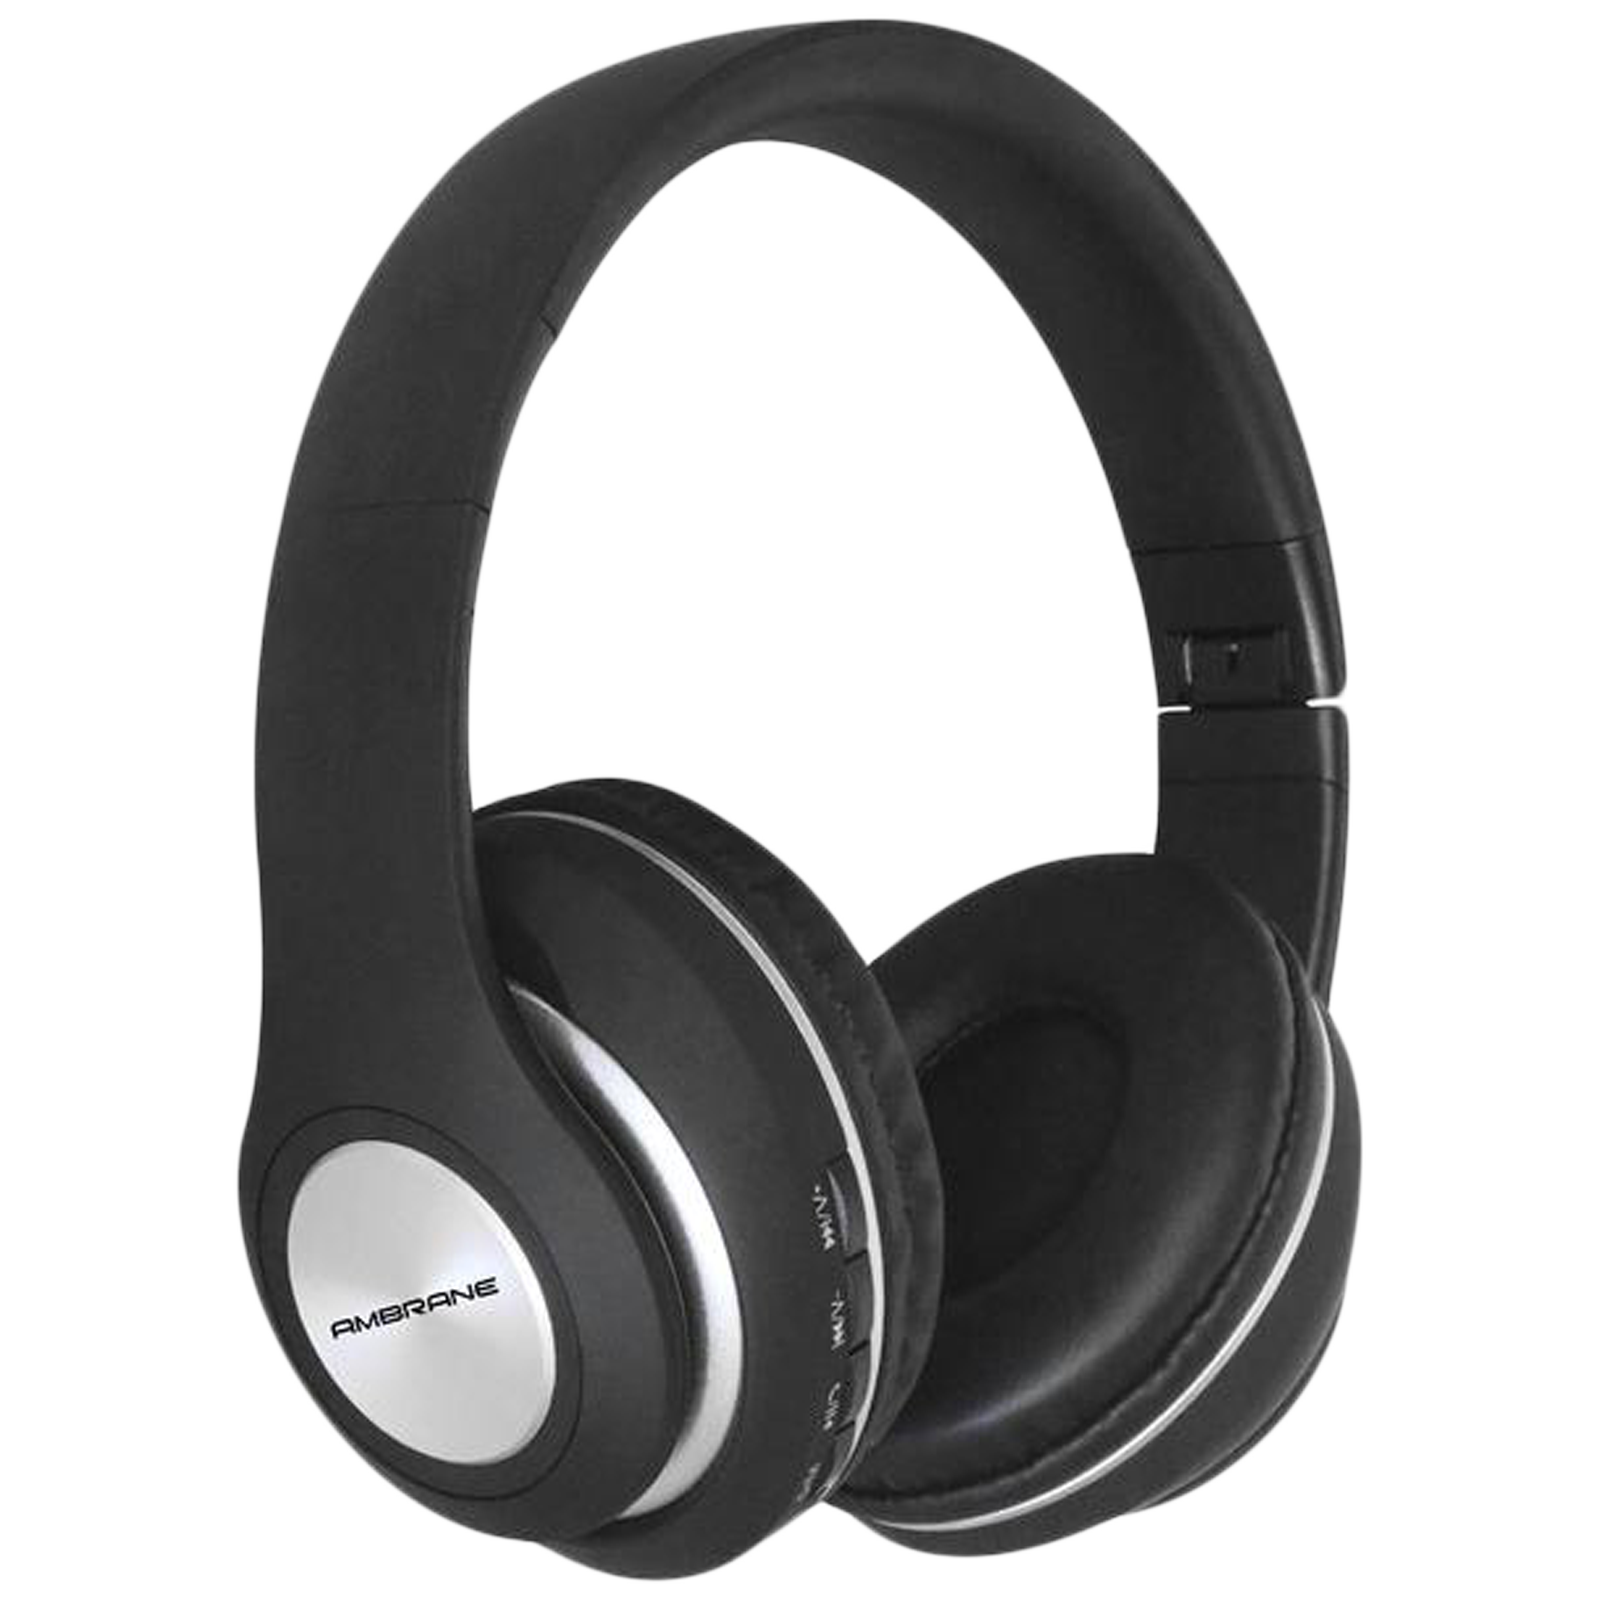 Ambrane WH-83 Over-Ear Wireless Headphone with Mic (Bluetooth 5.0, Multifunctional Controller, Black)